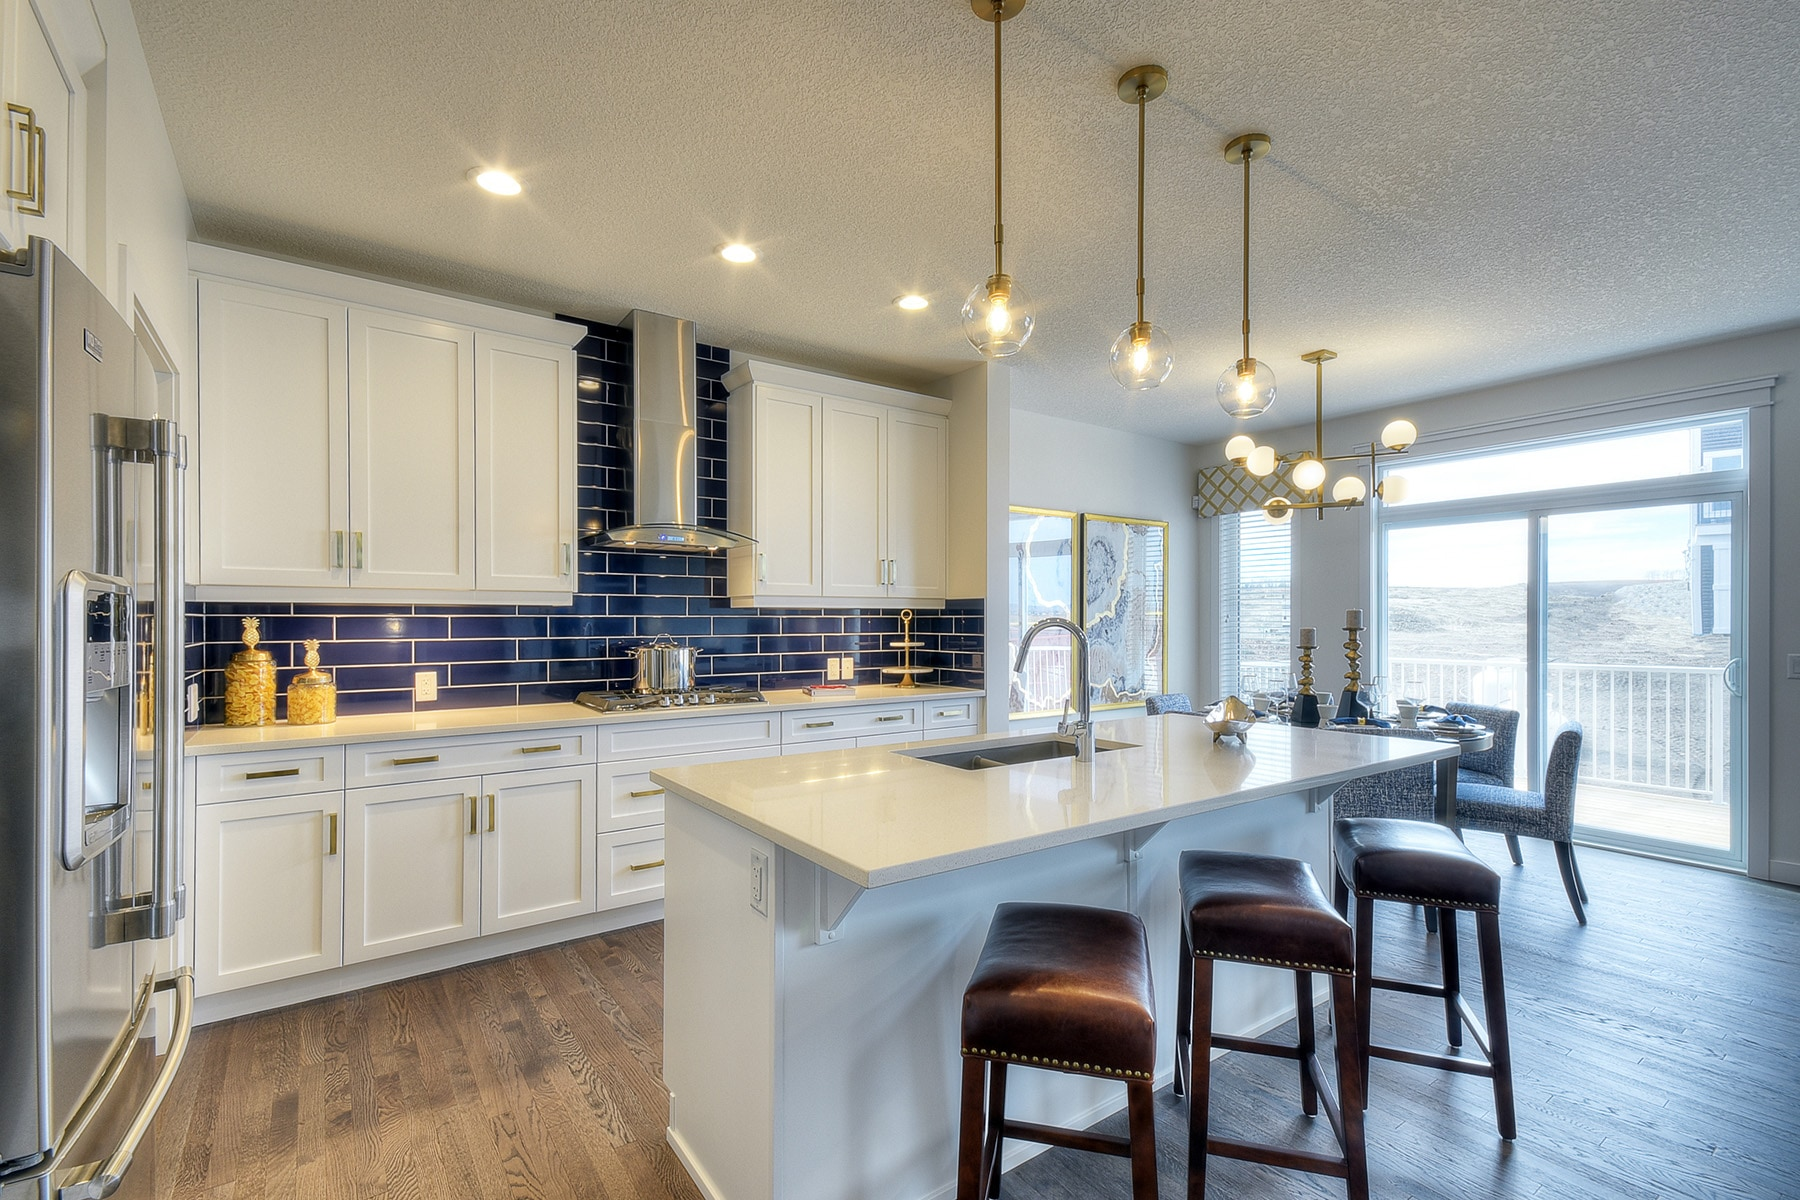 The Kingsley kitchen by NuVista Homes